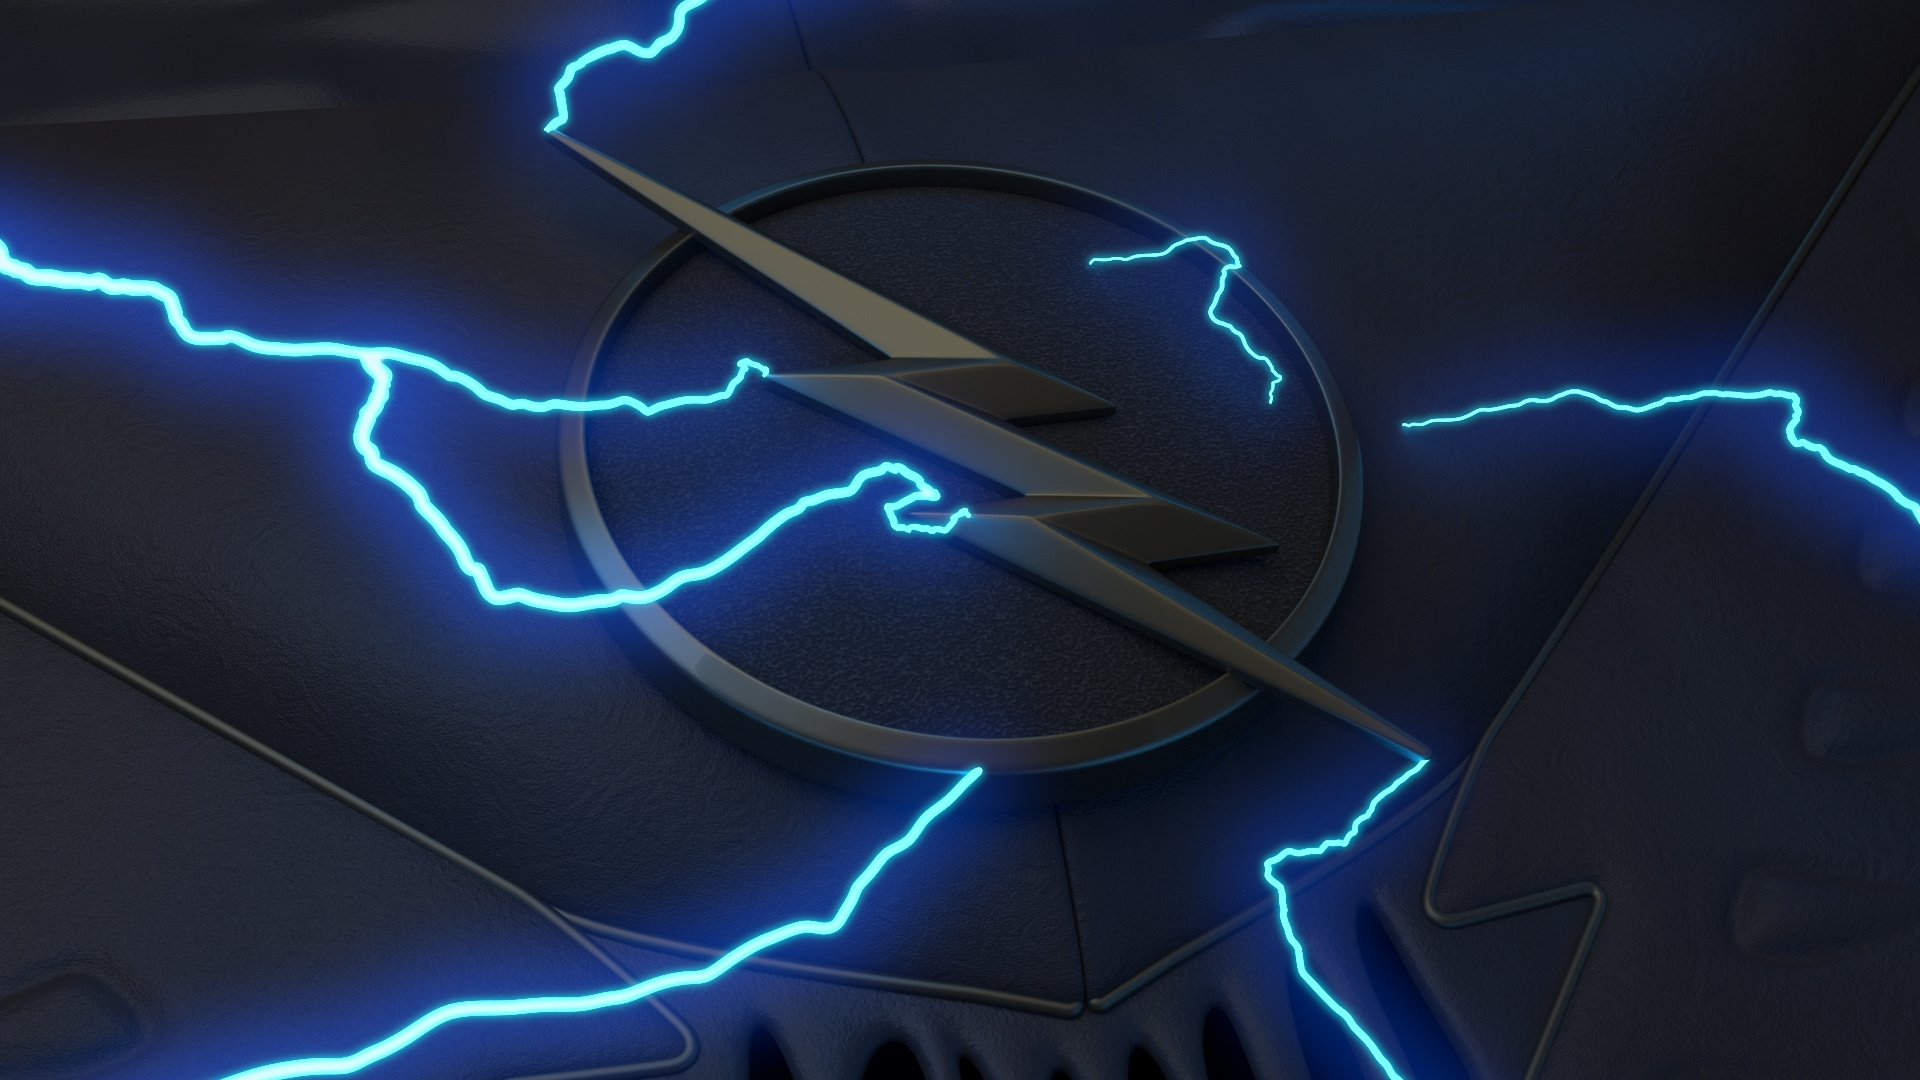 electrified 3d zoom wallpaper [1080p] (more sizes and another style